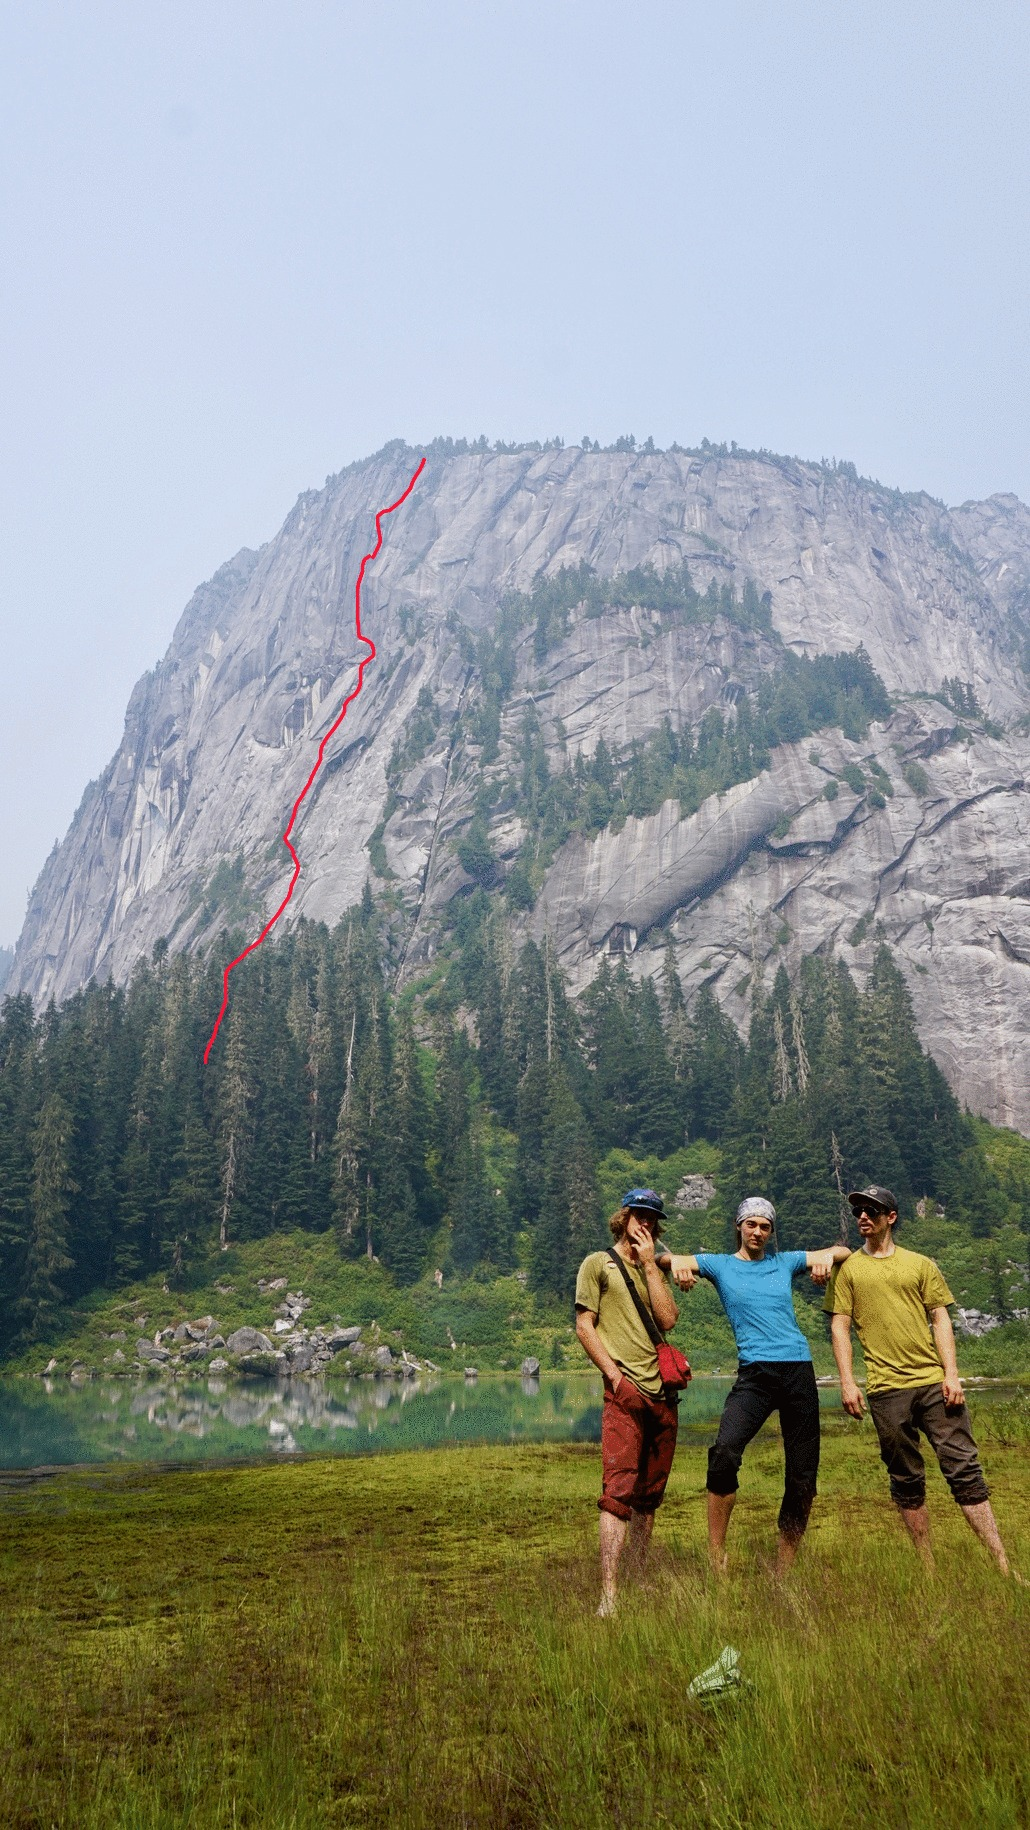 Evan Guilbault, Zoe Manson, and Max Merkin (left to right), with the first ascent of the southwest face of the Lady (550m, V 5.10 C3) shown behind.